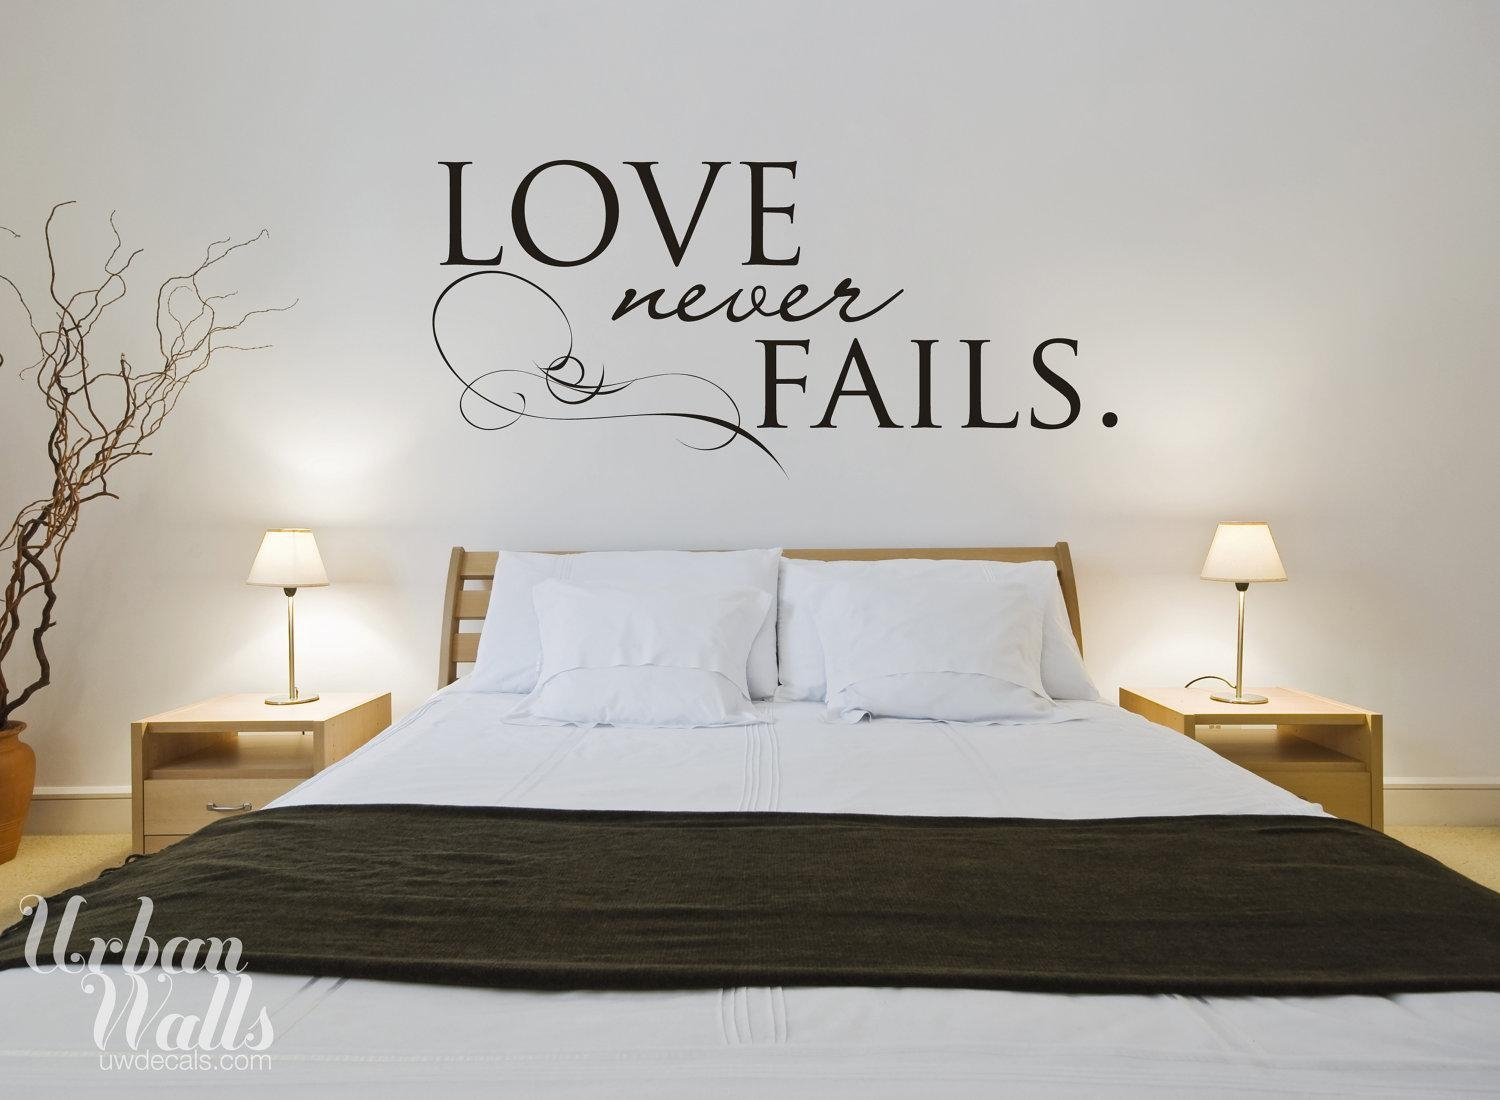 Love Wall Art Decals | Wallartideas Regarding Love Wall Art (Image 10 of 20)